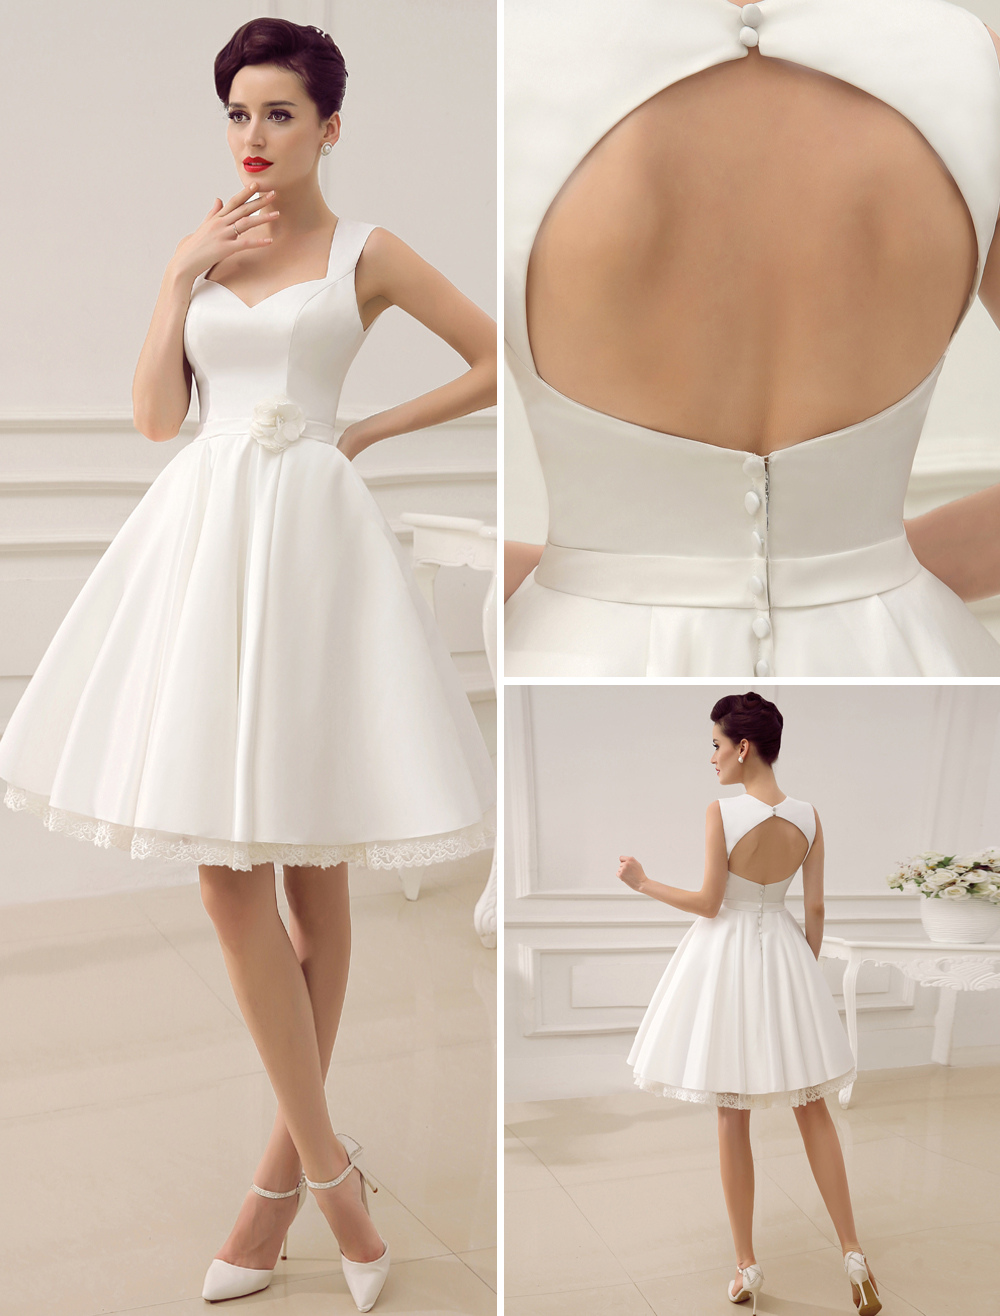 White Summer Short Wedding Dresses,Knee Length Summer Wedding Dresses,Satin Short Wedding Dress,